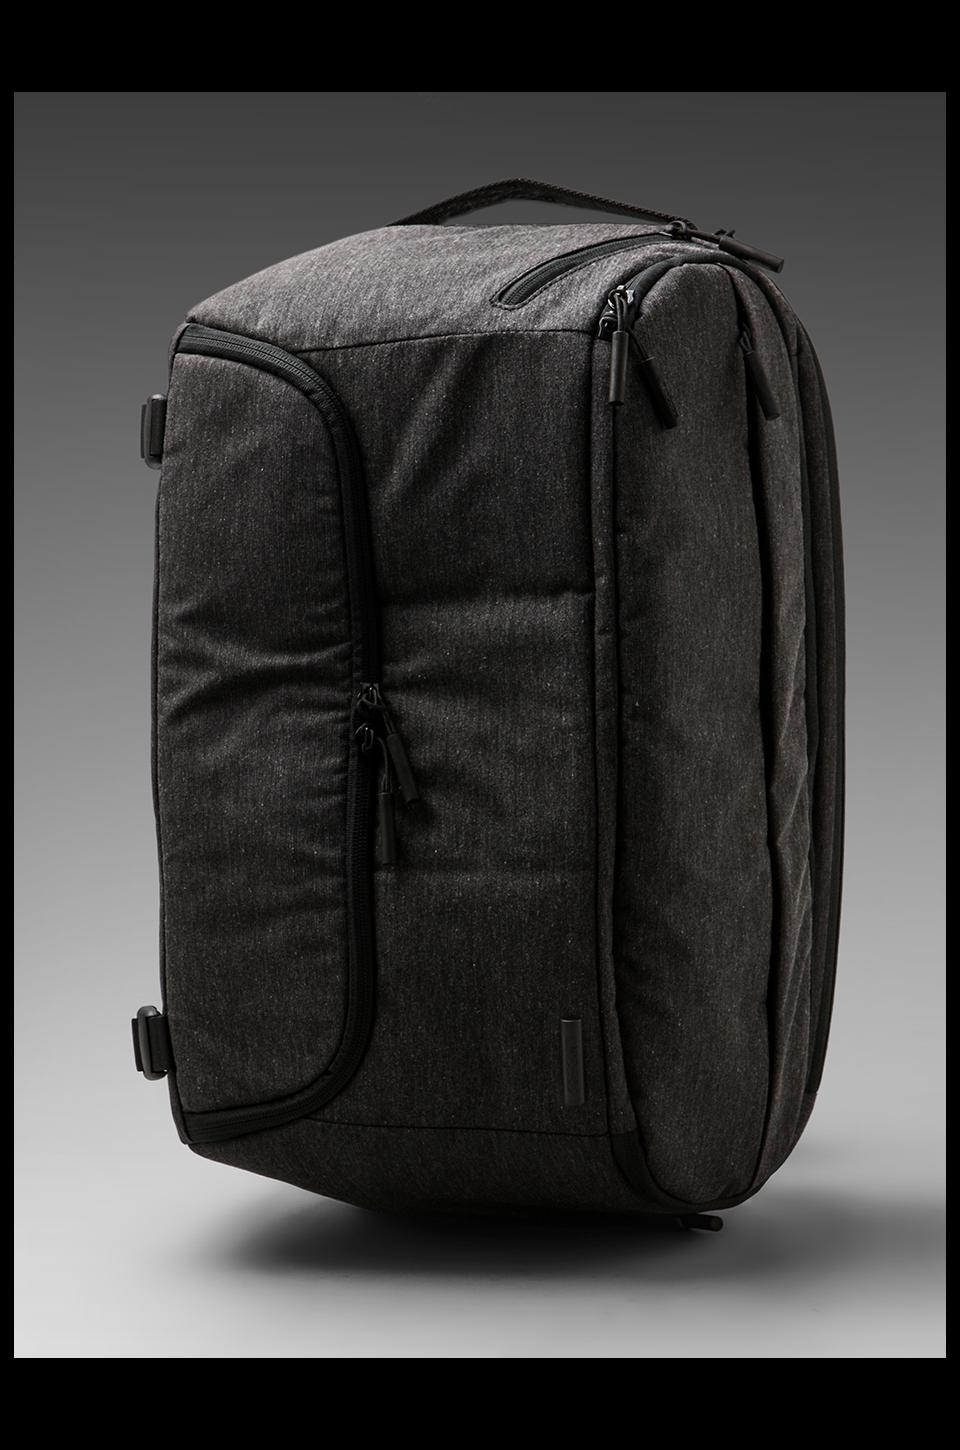 INCASE DSLR Pro Sling Pack in Black